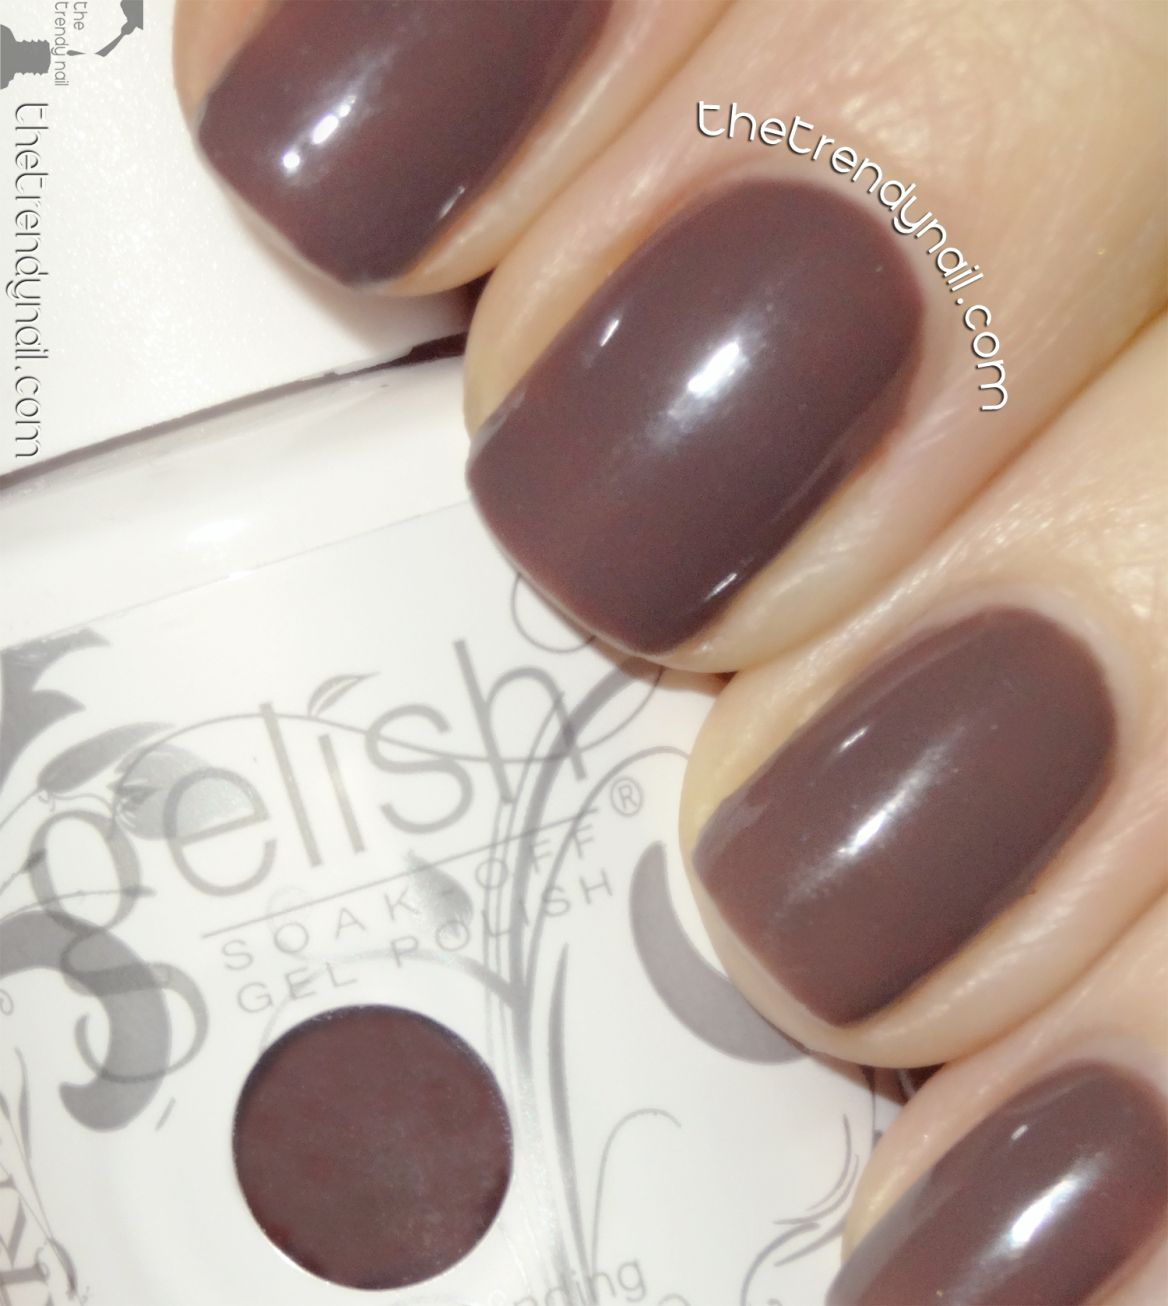 Lust At First Sight by Gelish #gelpolish #nails   gifts   Pinterest ...